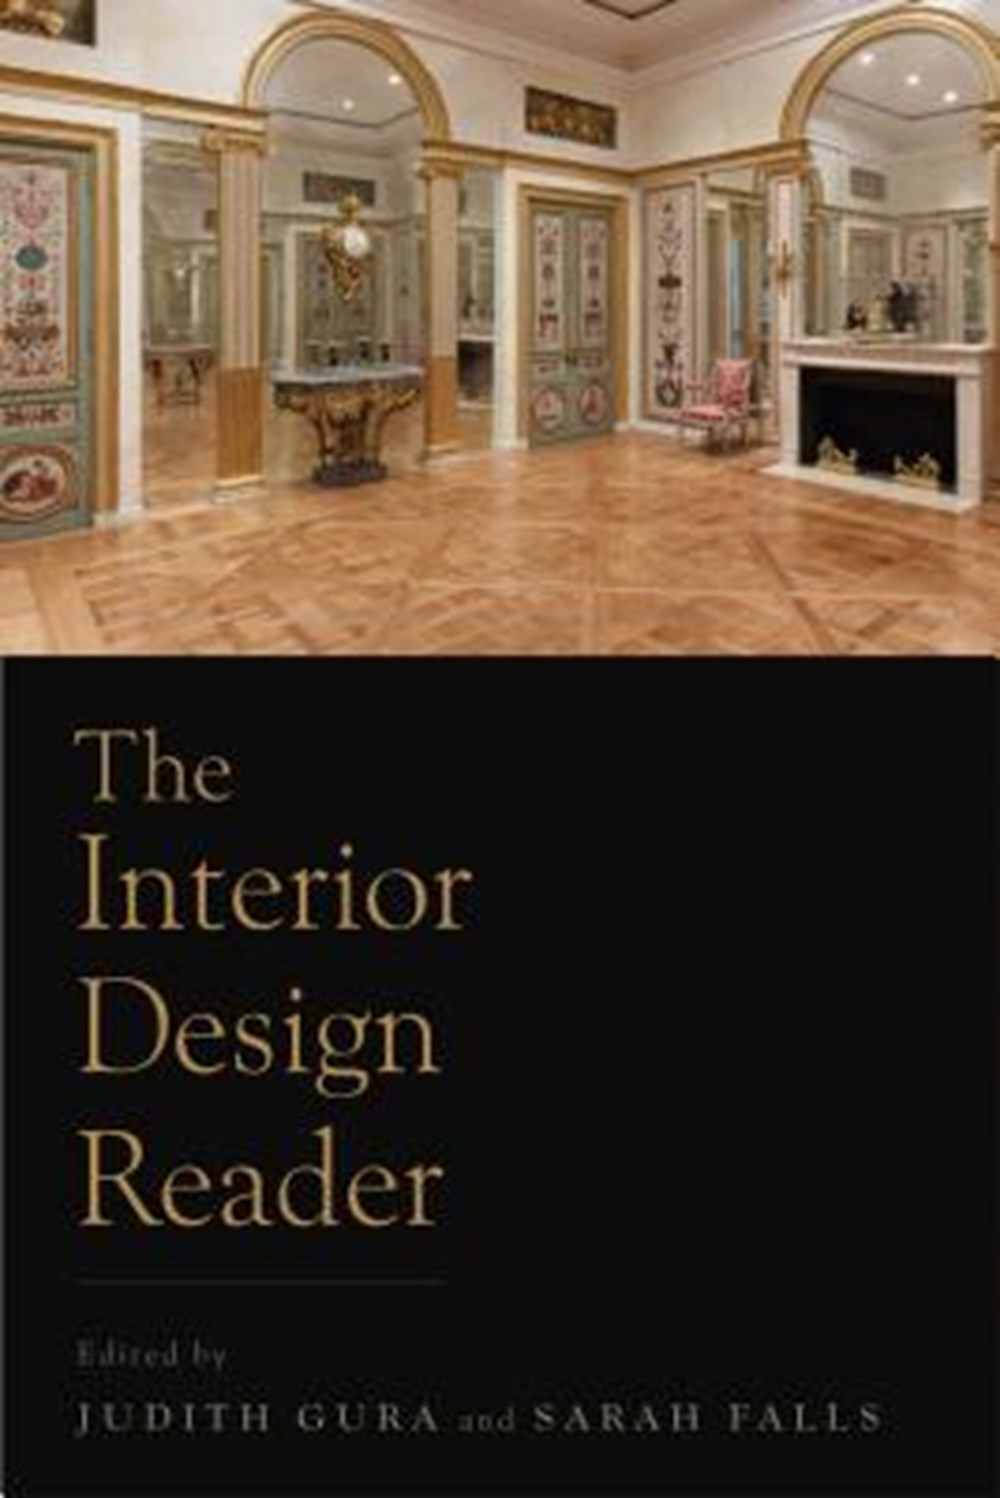 Interior Design Reader